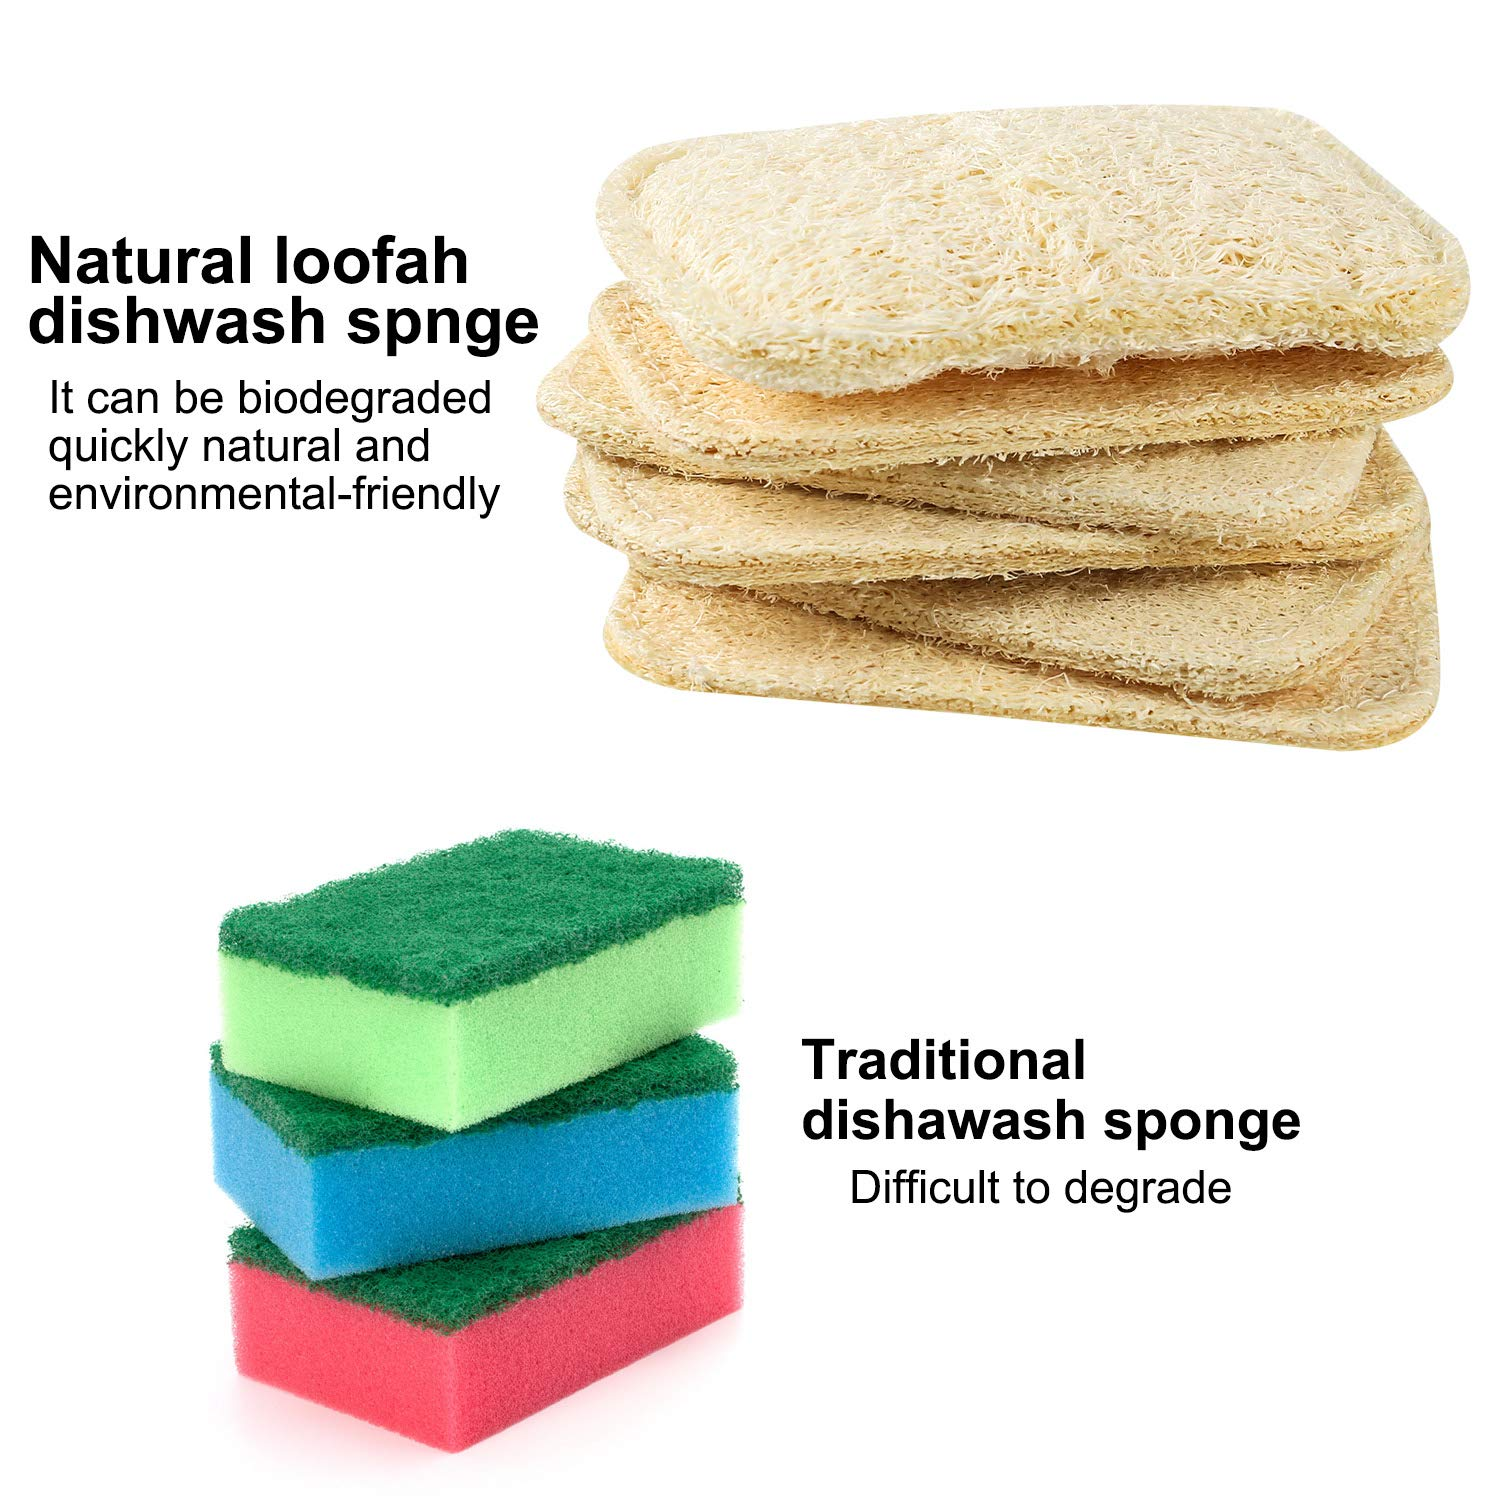 Qkurt Natural Loofah Sponge Scourers 4pcs Pack of Rectangular Shaped Bowl Dish Scrub Dish Washing Sponges for Kitchen Cup Bowl Dish Table Washing